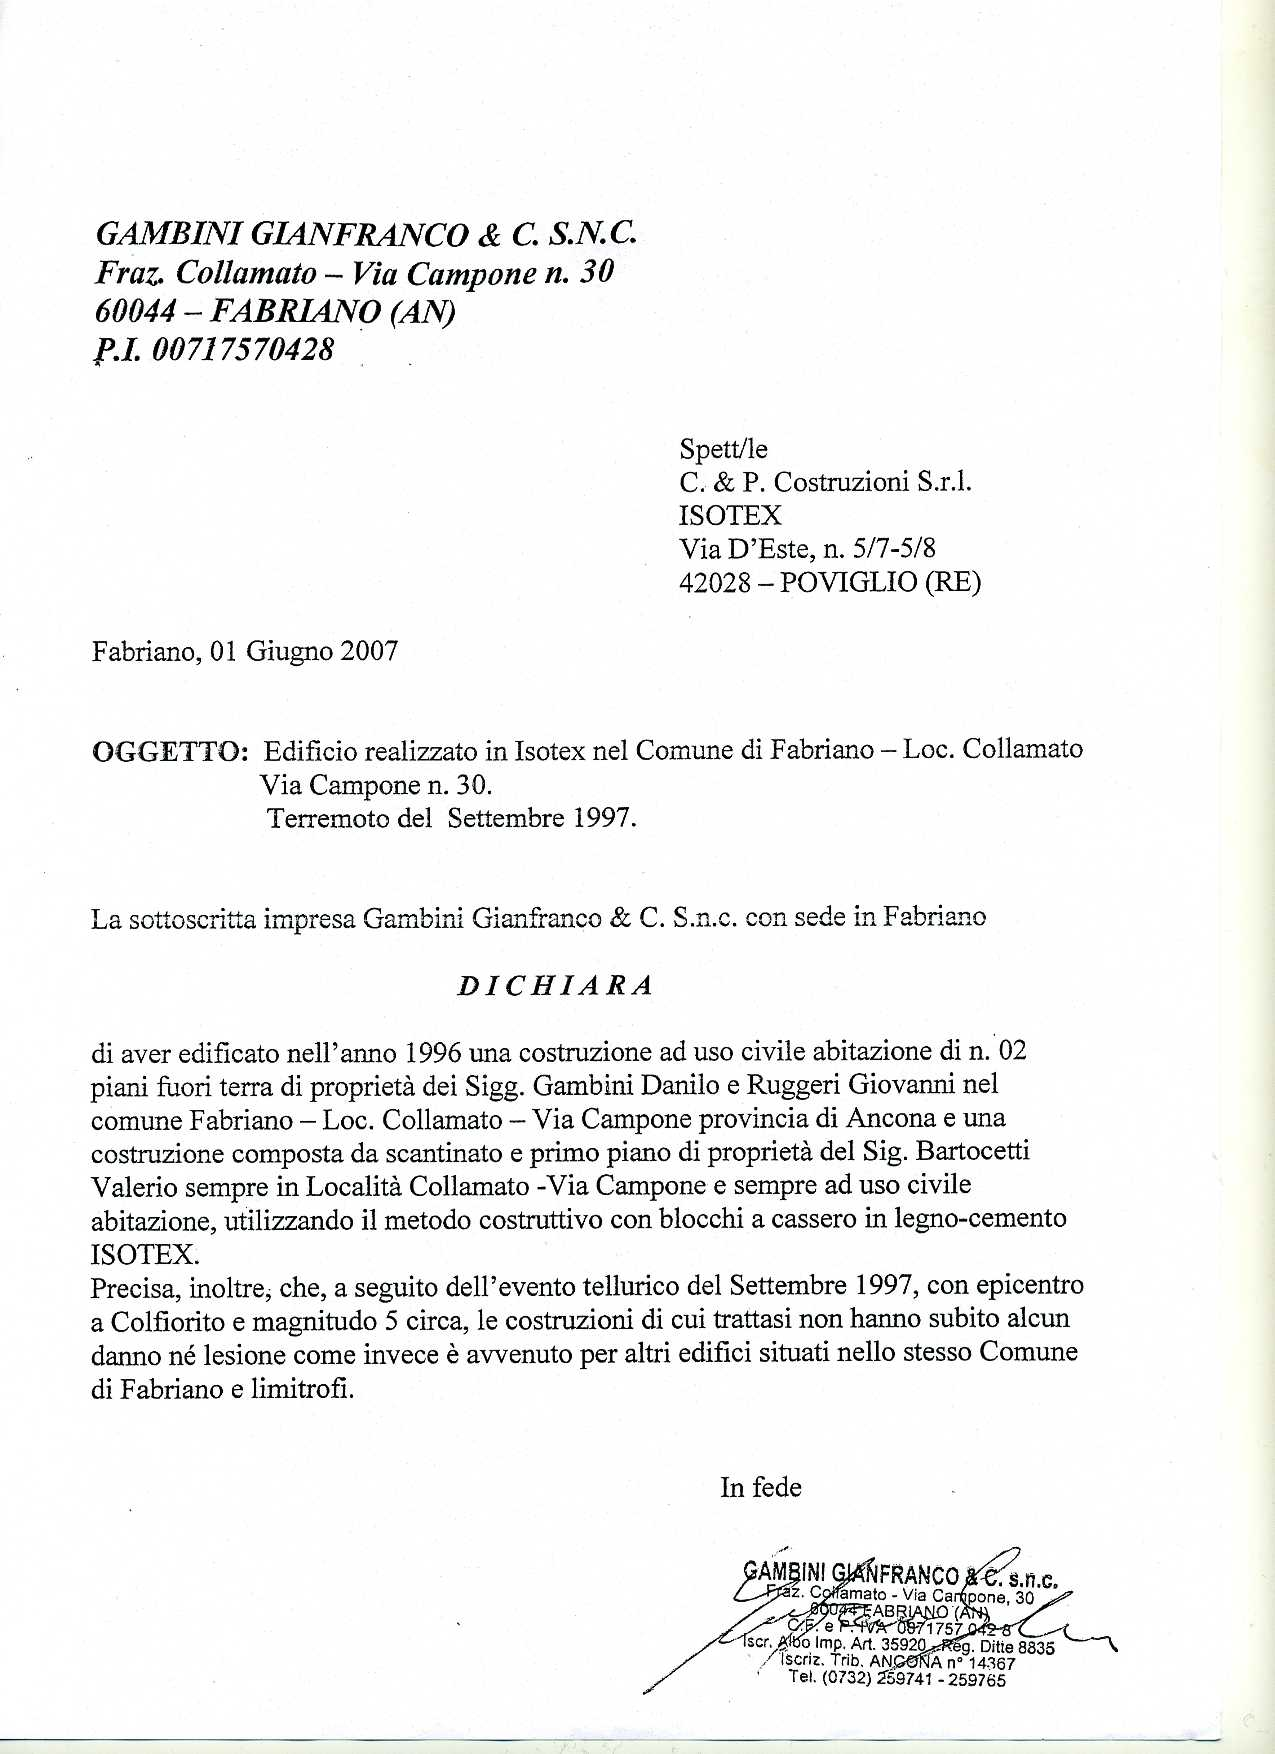 The company Gambini Gianfranco, undersigned, declares that after the telluric event of September 1997, with its epicenter in Colfiorito and of magnitude 5, the buildings did not undergo any damage or injury.